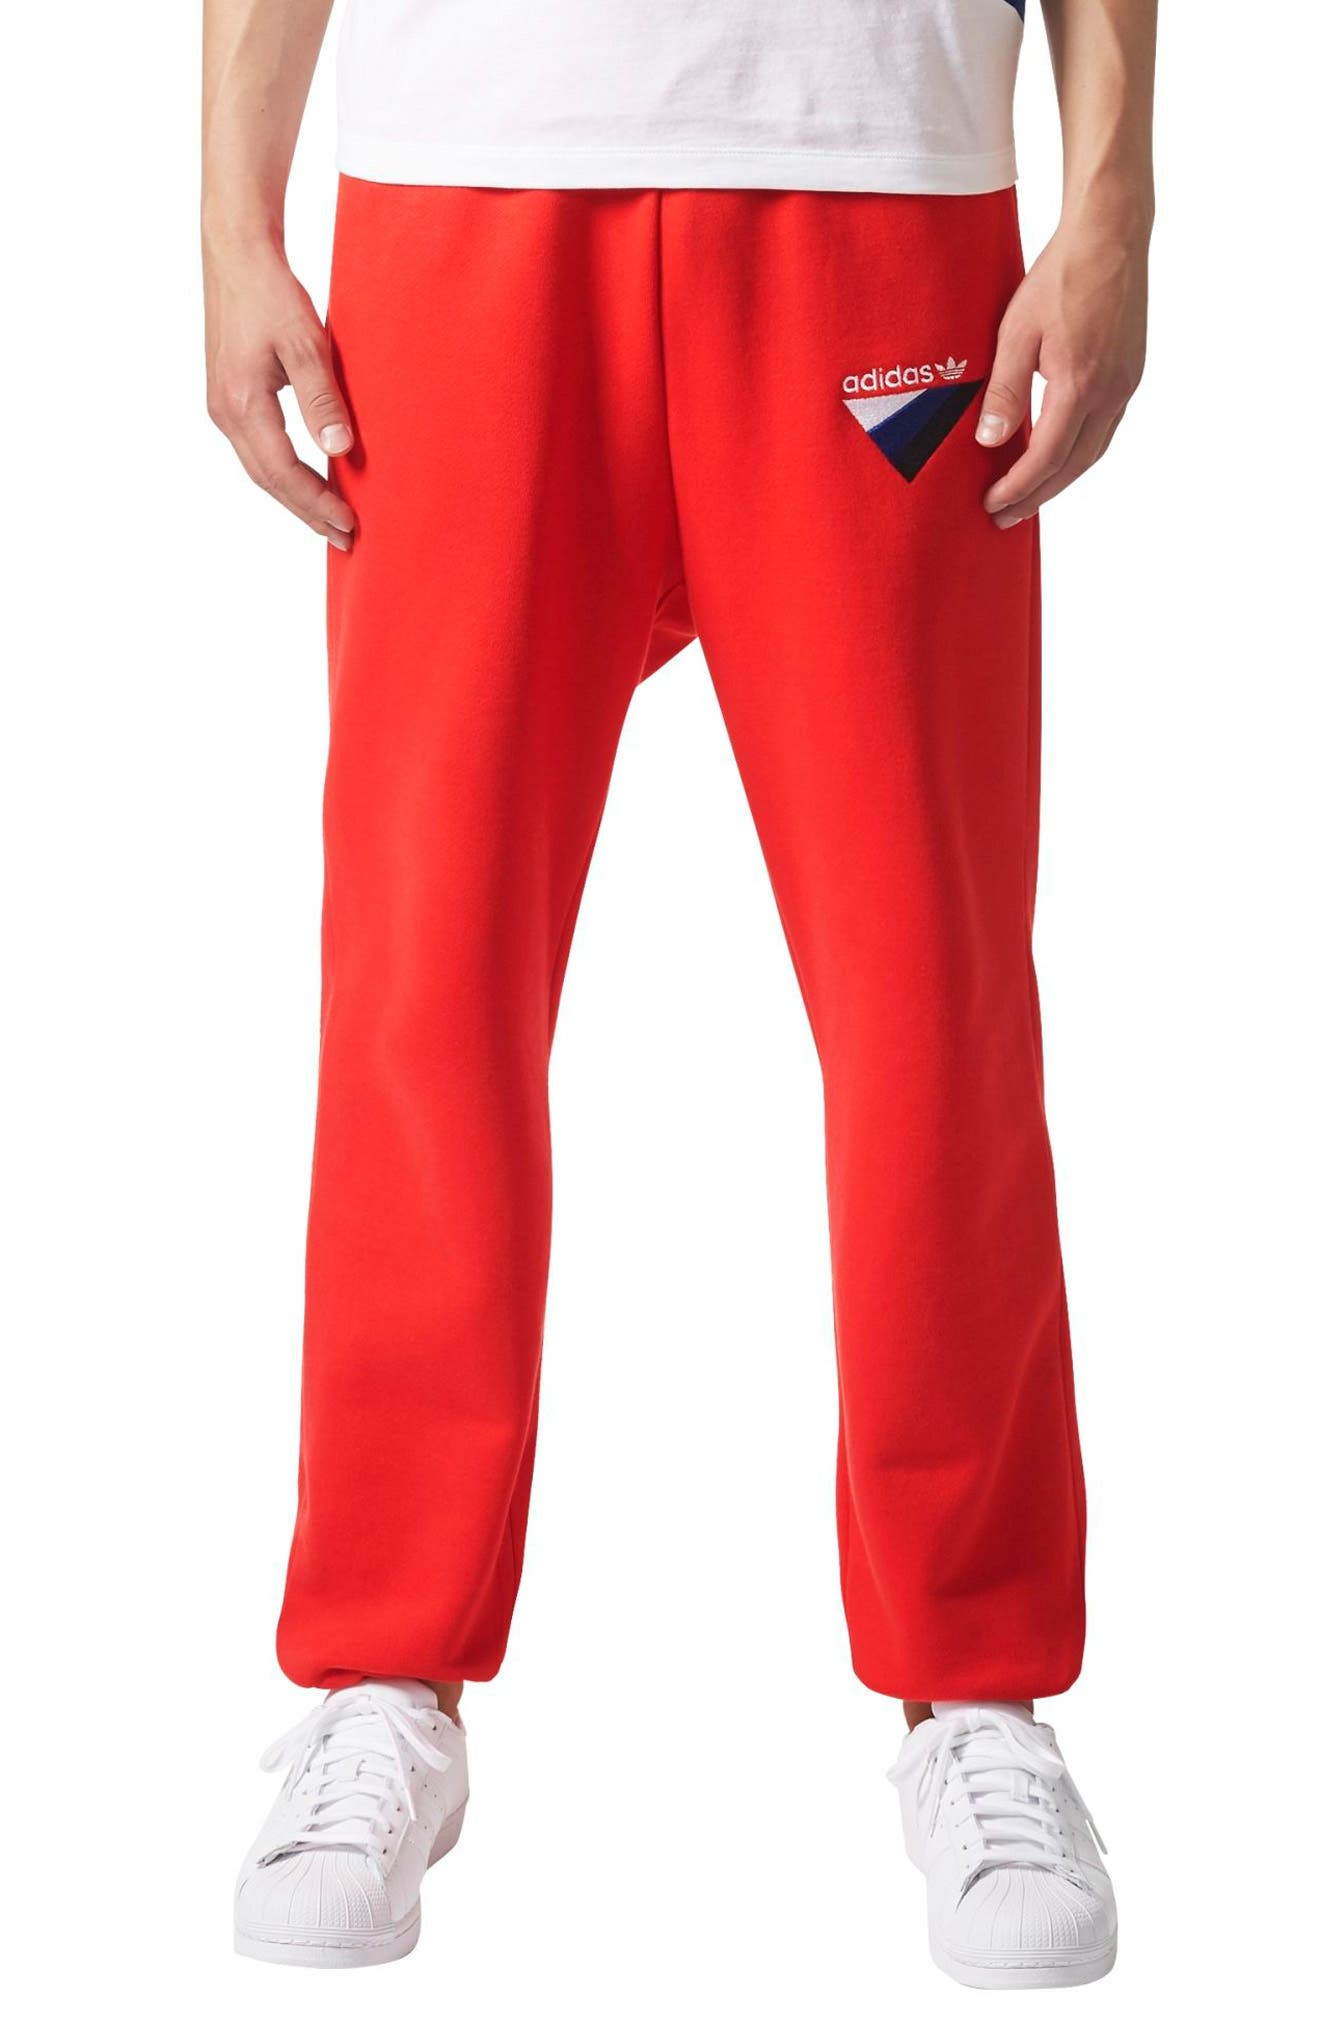 Originals Anichkov Sweatpants,                             Main thumbnail 1, color,                             600